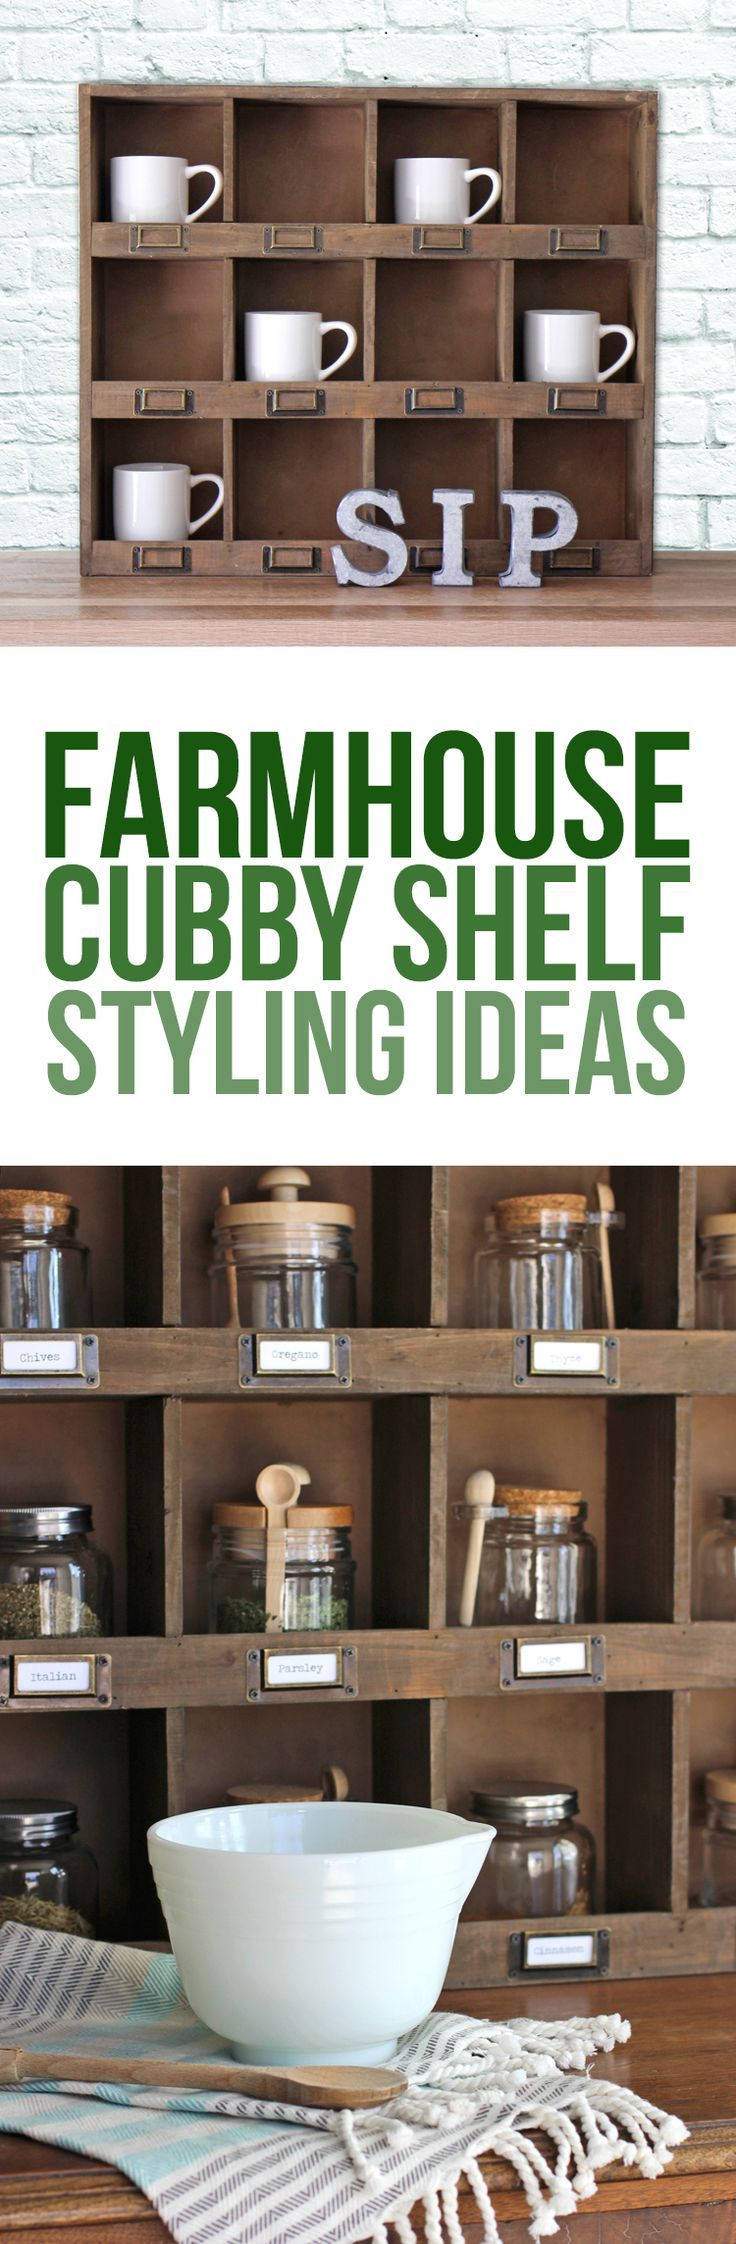 Four awesome ways to style a farmhouse style shelf. Cubby shelf styling ideas. Get your shelfie on! Home decor tips and tricks. Decorating with barn wood.